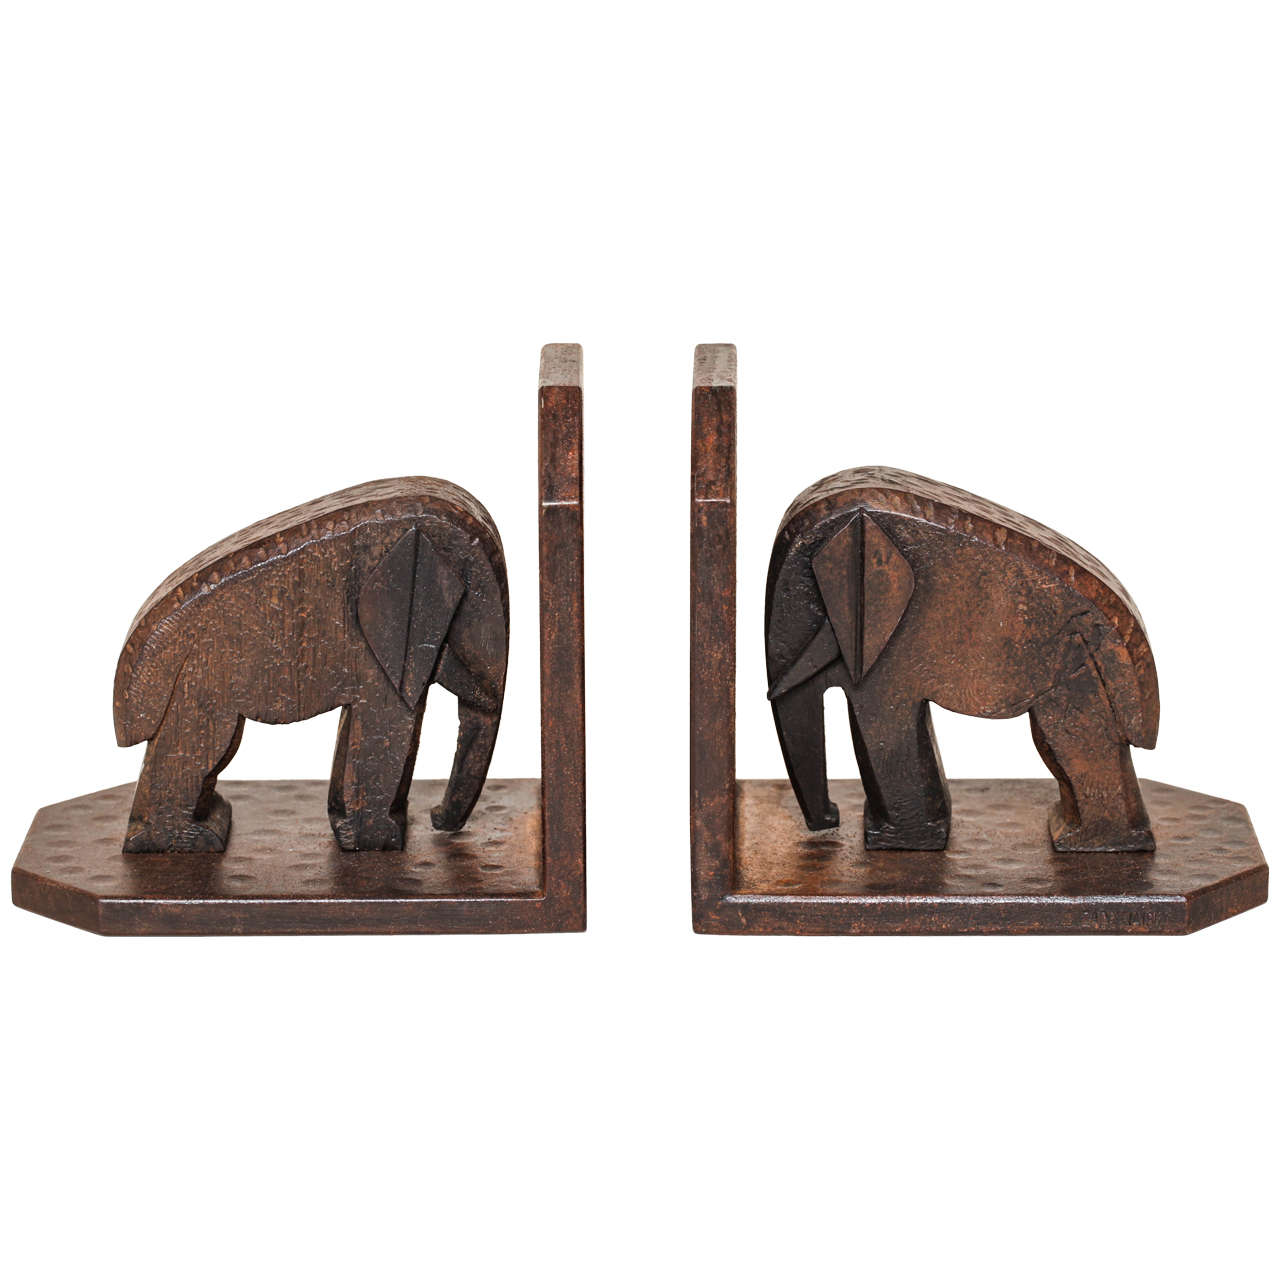 Michel Zadounaisky French Art Deco Wrought Iron Elephant Bookends For Sale